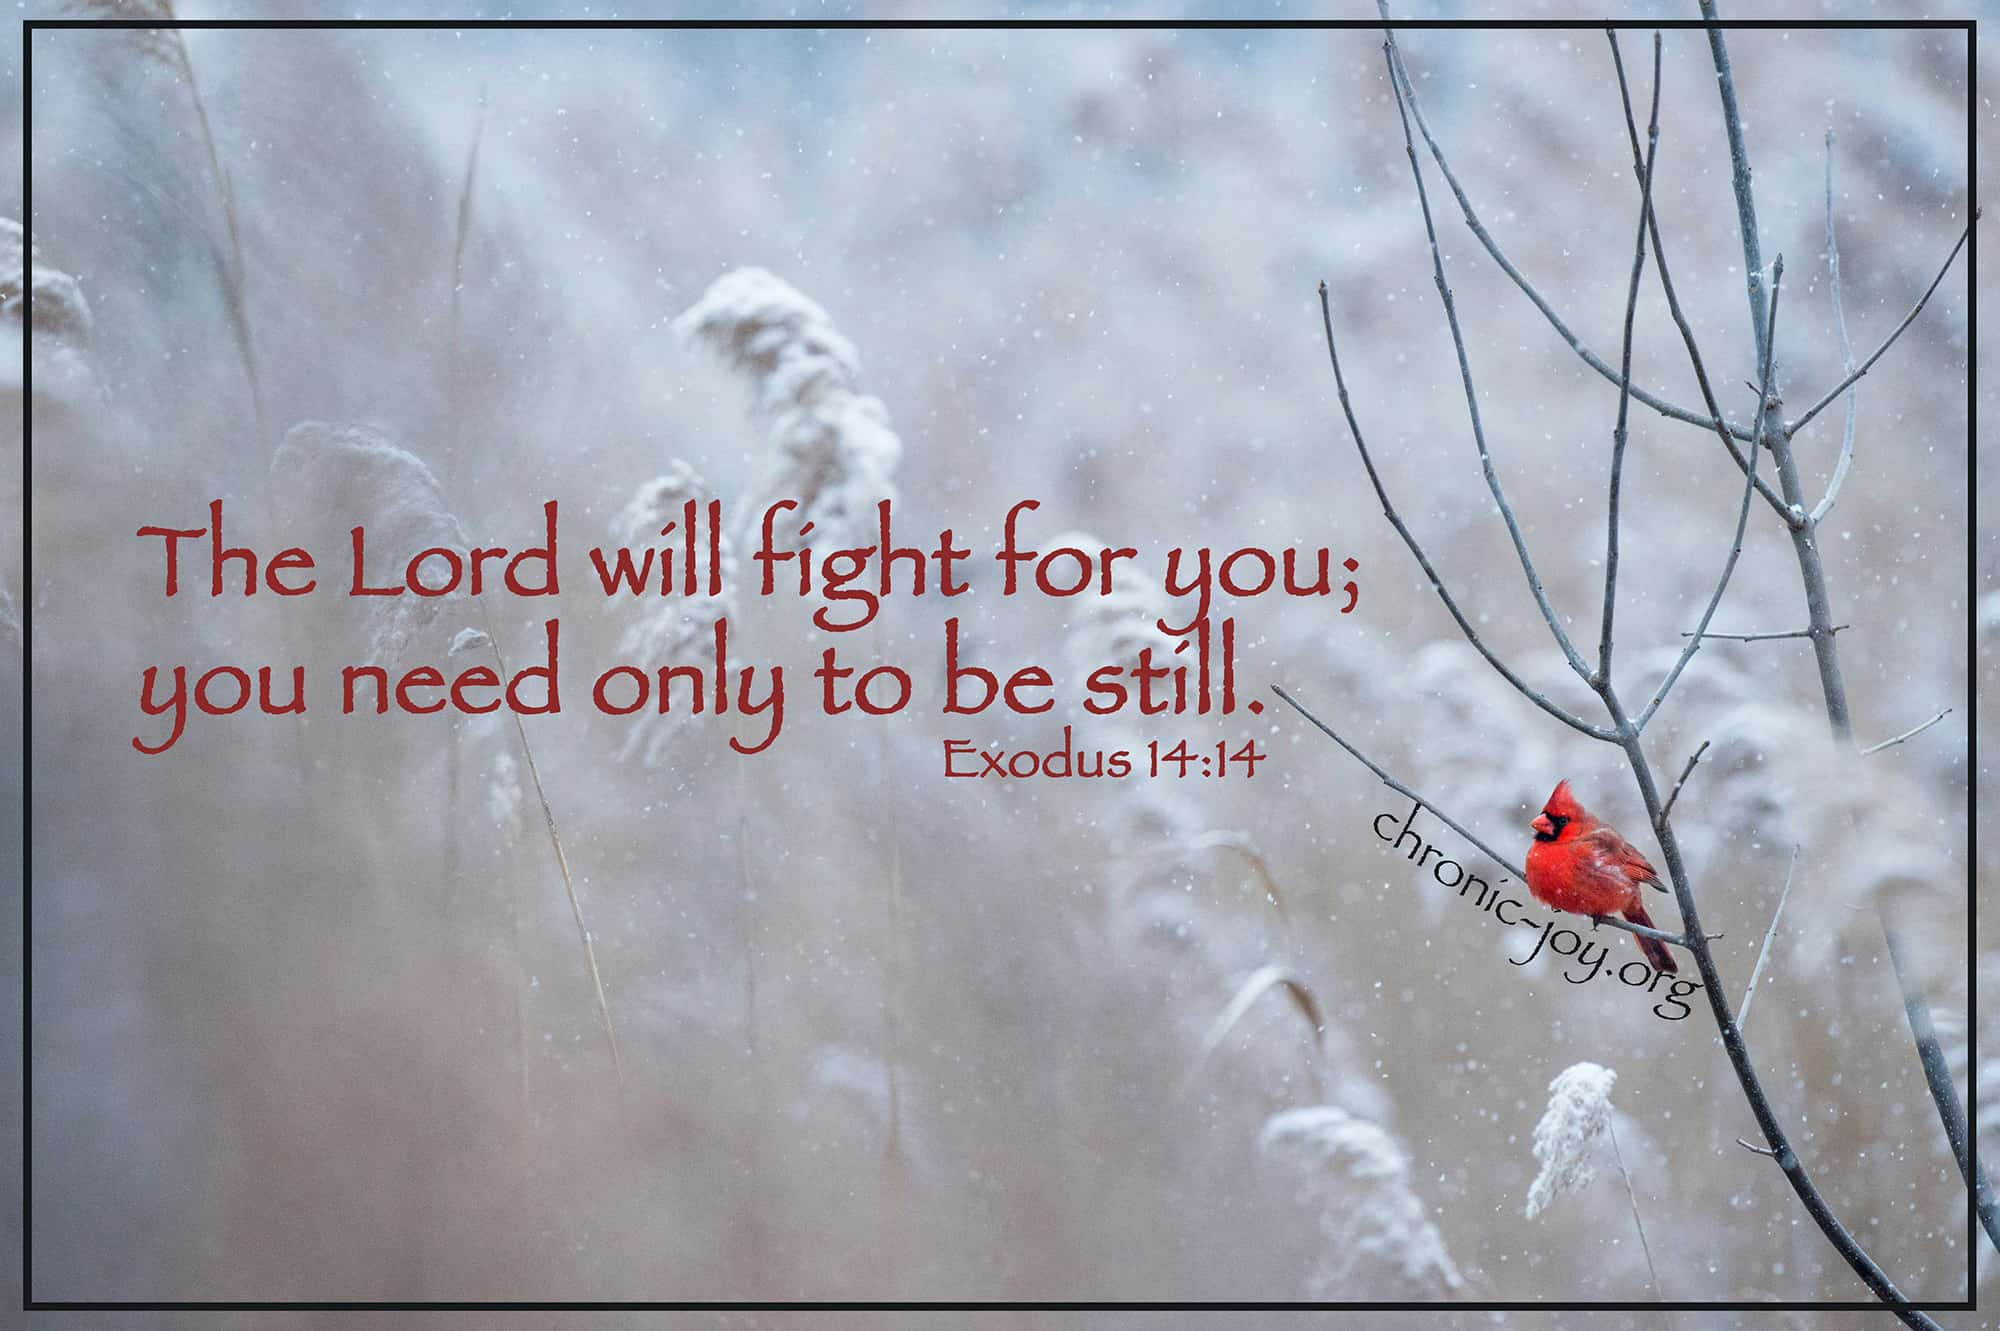 The Lord will fight for you; you only need to be still.